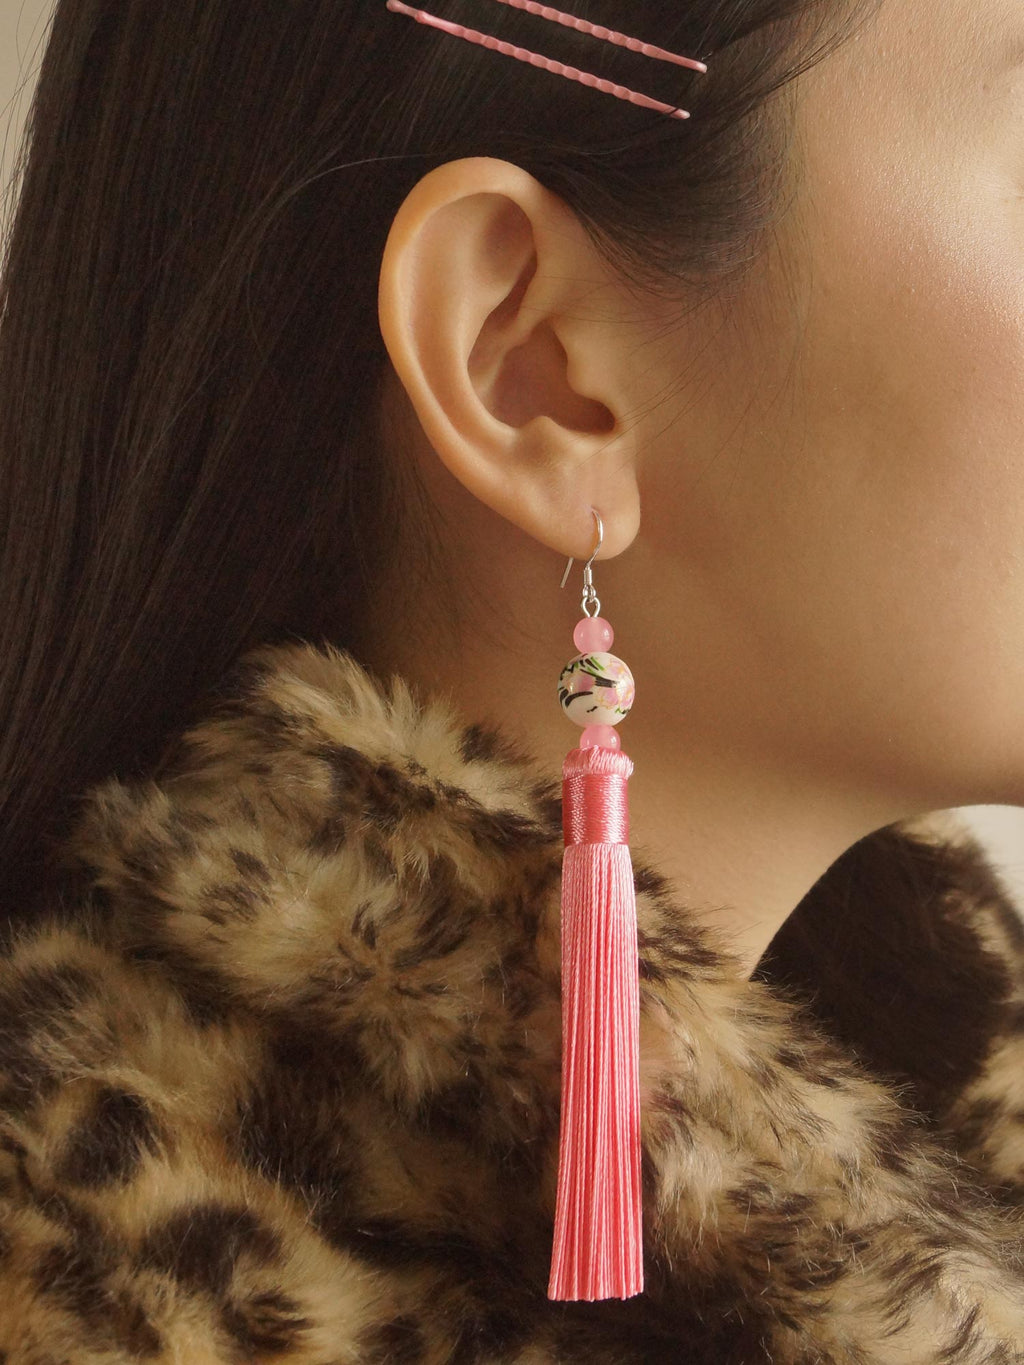 Xi Shi Earrings (925 Silver Earhooks) - Pink